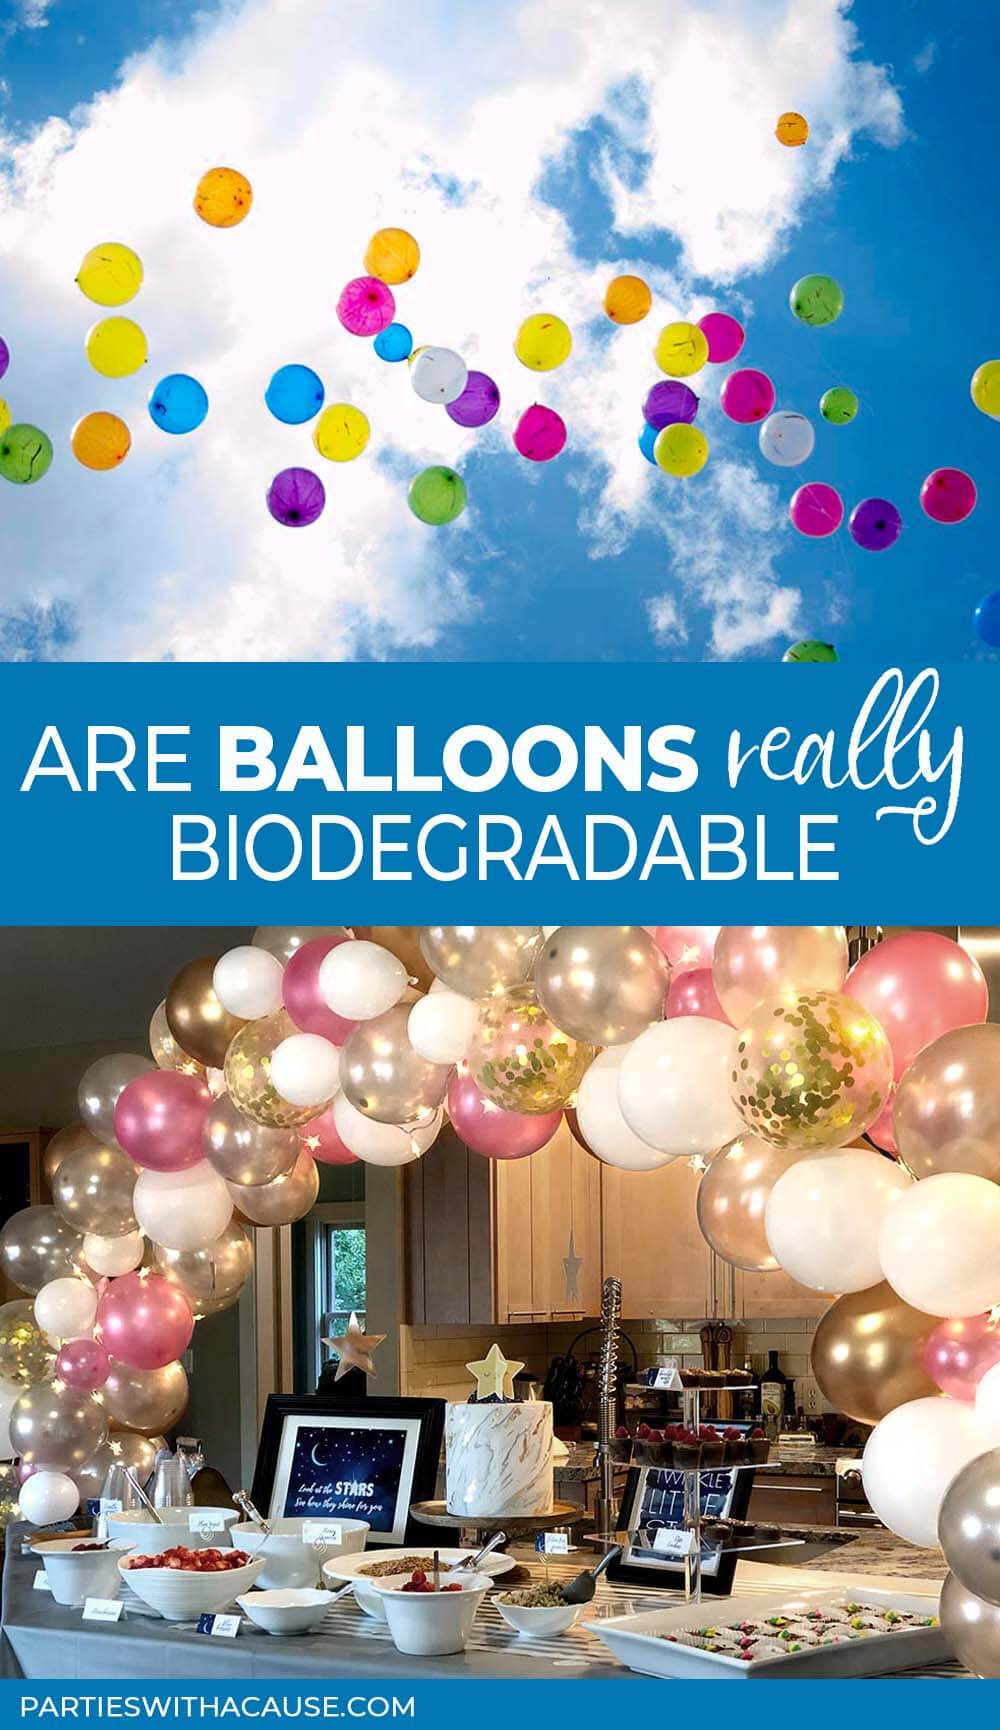 Are balloons really biodegradable? Salt Lake Party stylist